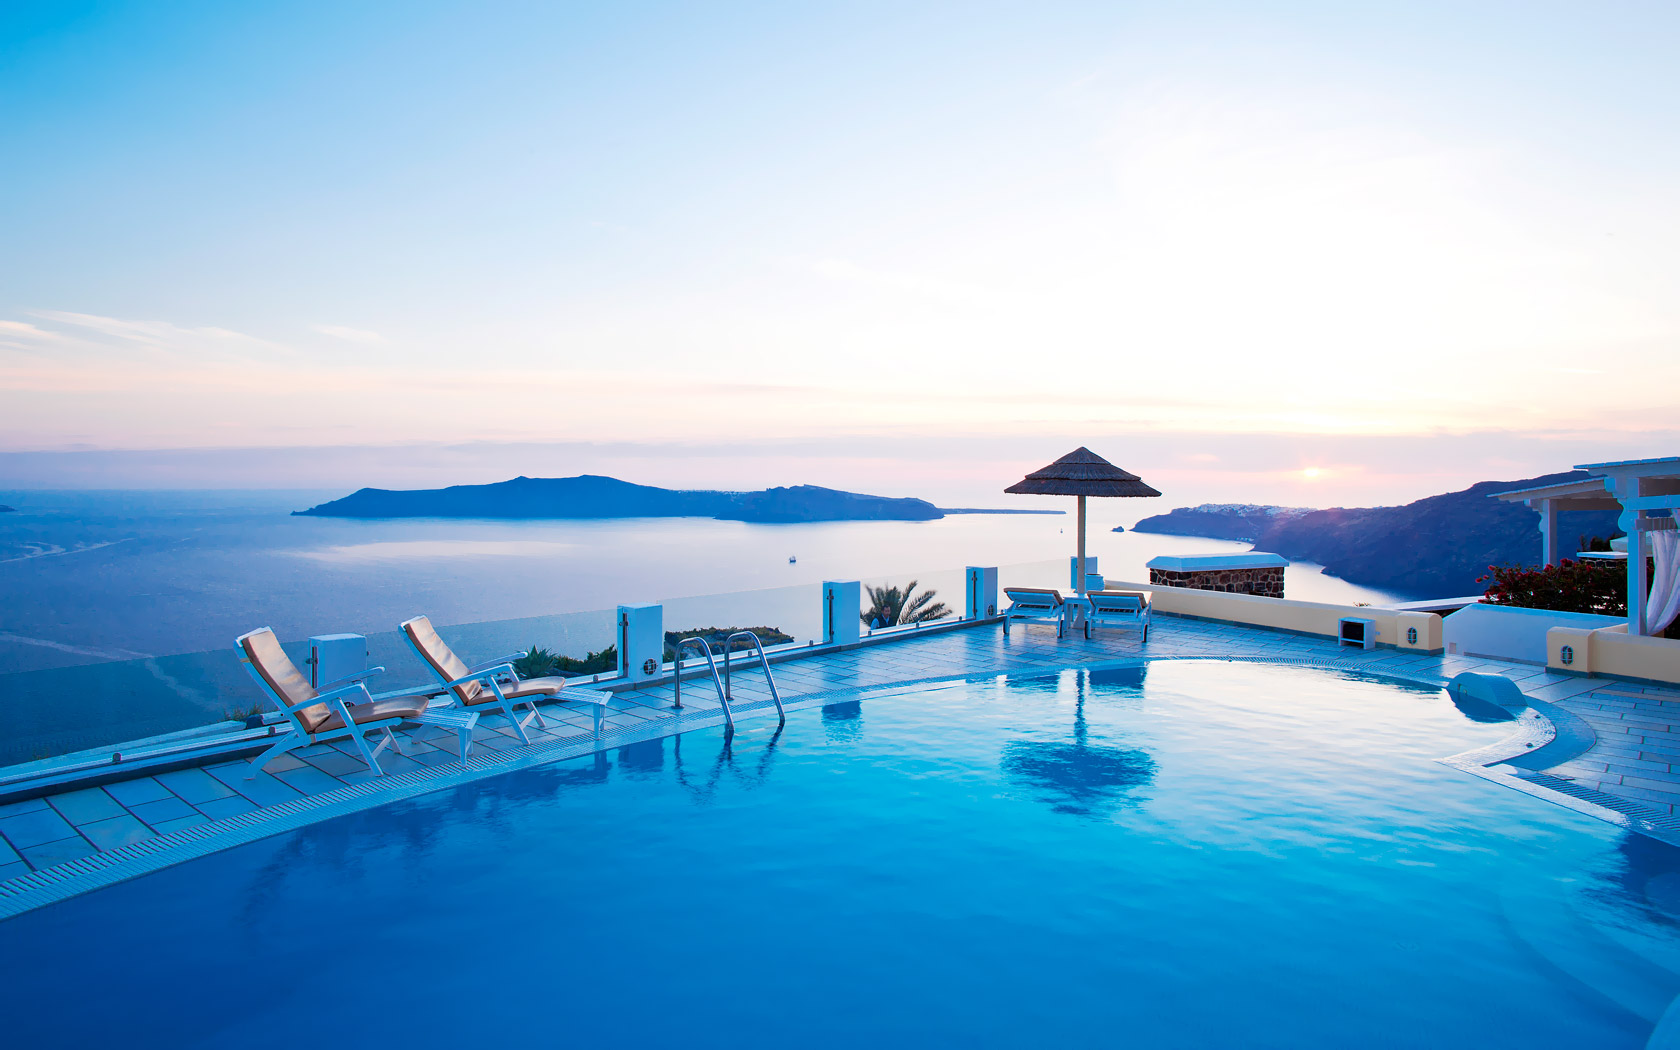 Luxury hotels resorts in greece tommy beauty pro for Hotels santorin